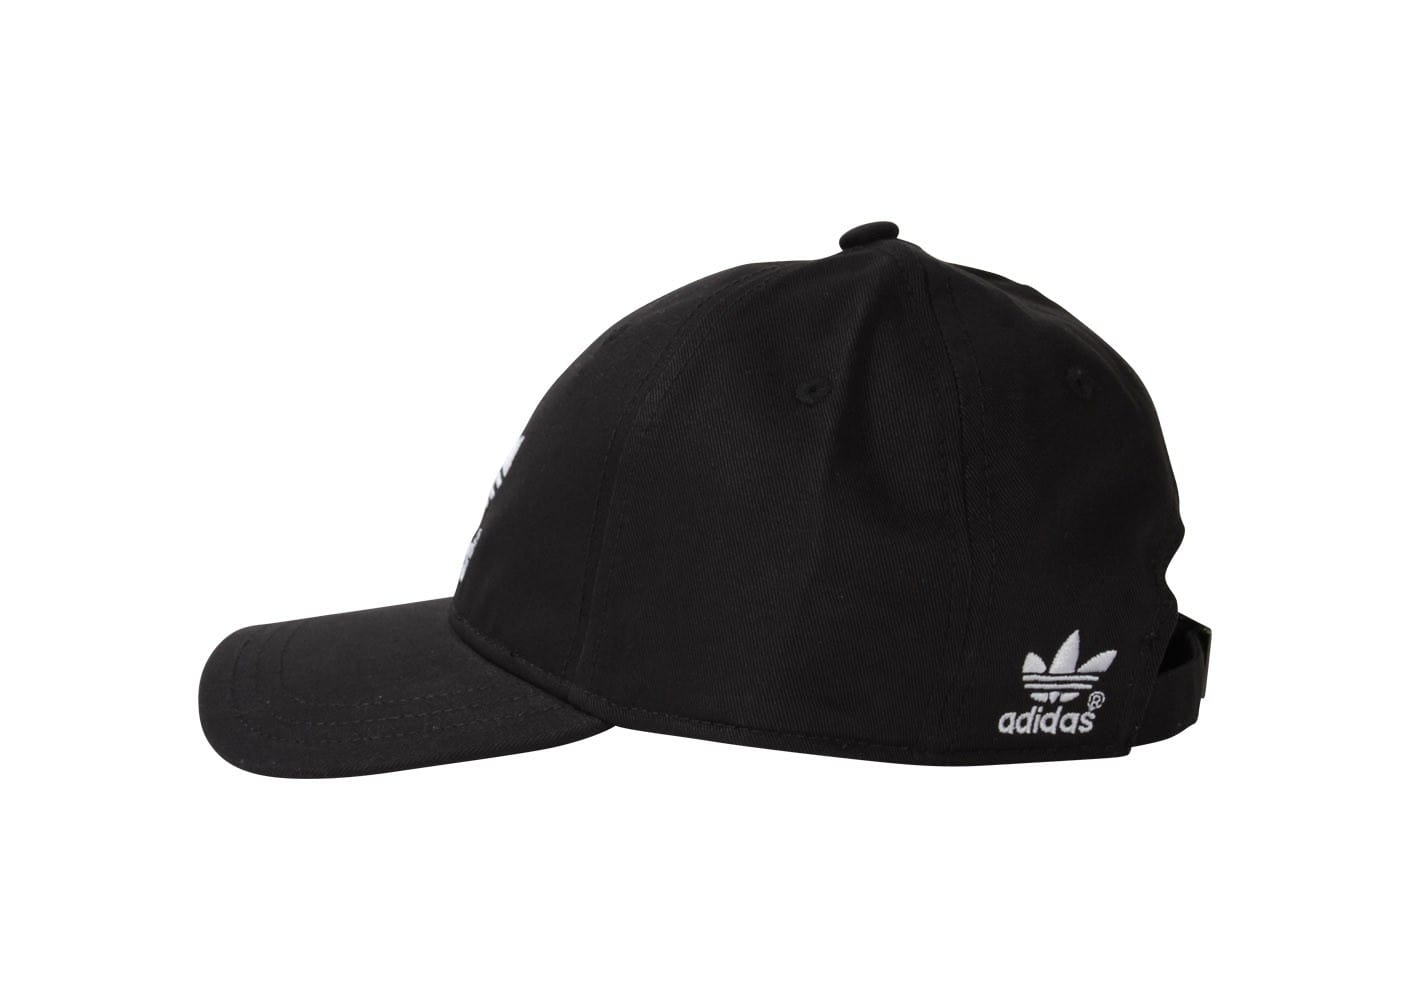 adidas casquette classic noir blanche adidas chausport. Black Bedroom Furniture Sets. Home Design Ideas